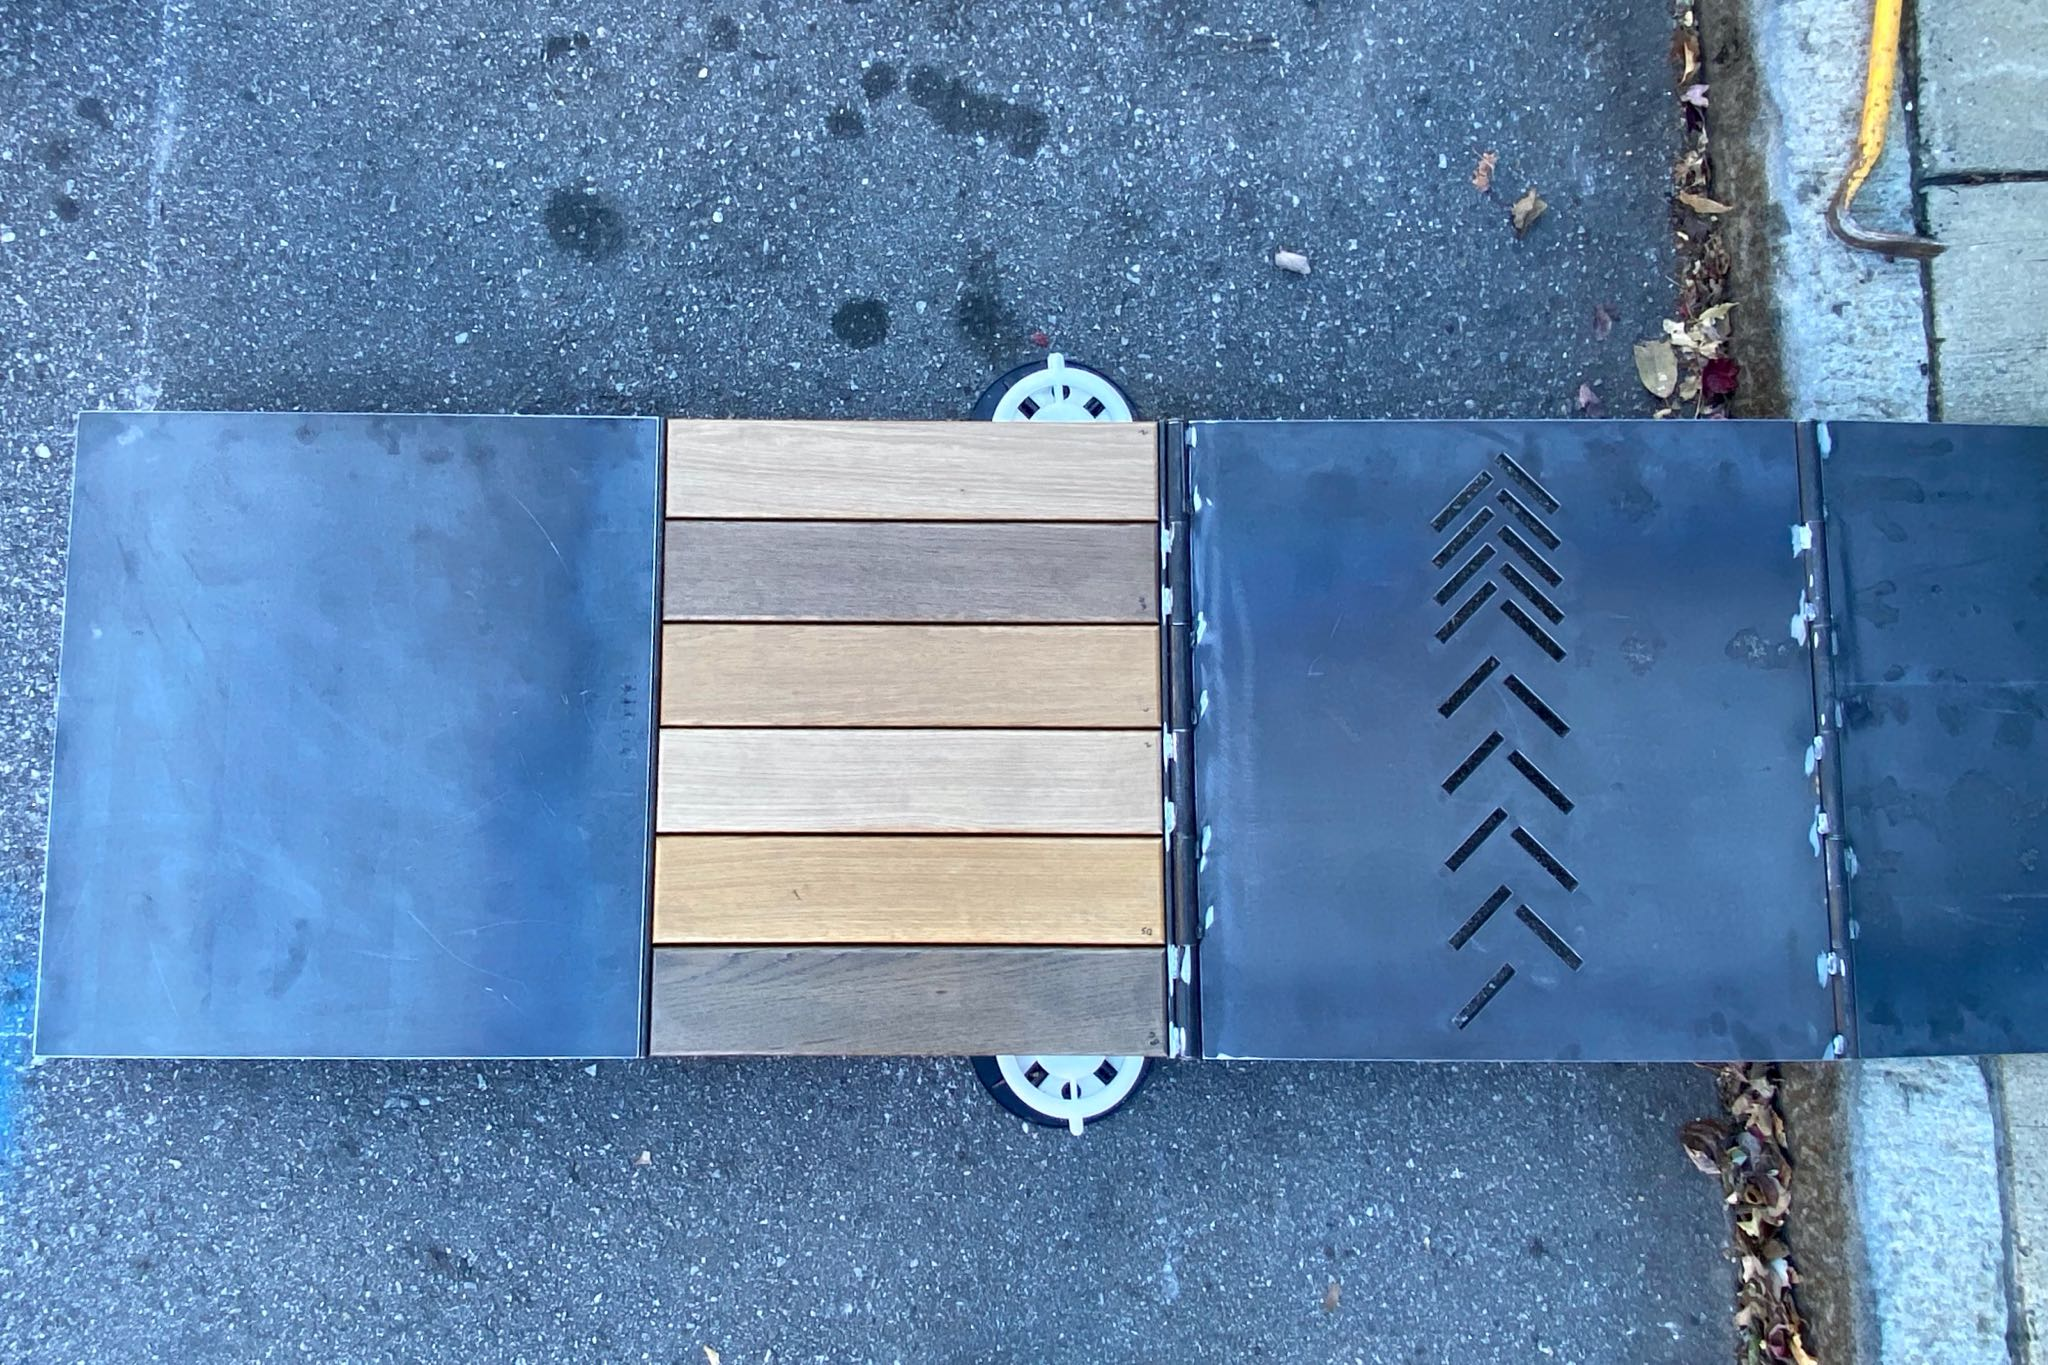 Prototype for the Cherokee Parklet made of metal and wooden planks.